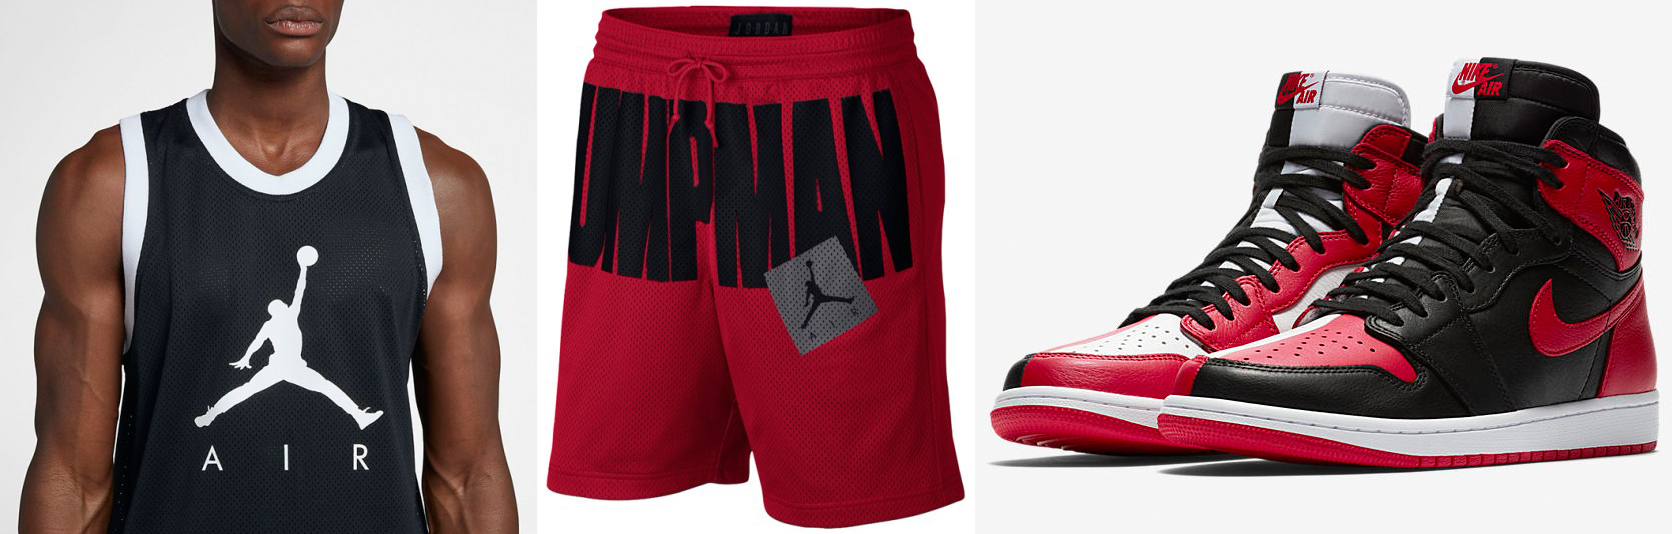 air-jordan-1-homage-to-home-apparel-match